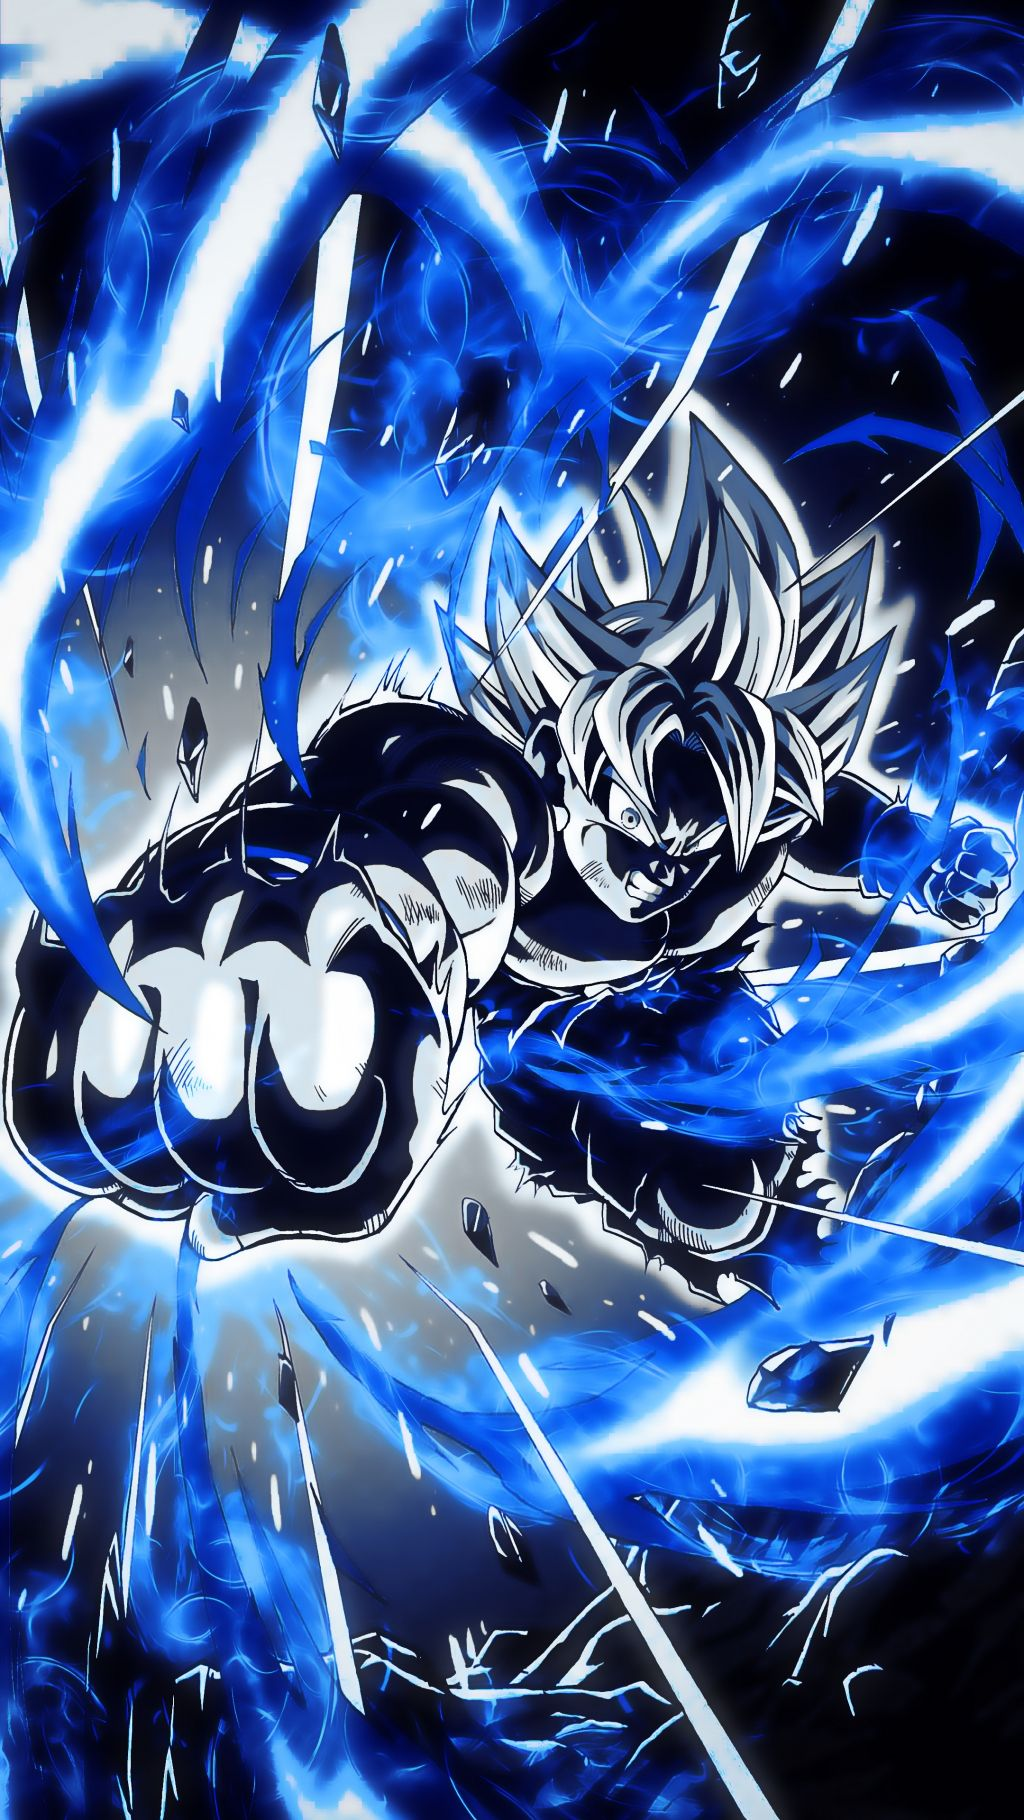 20 4k Wallpapers Of Dbz And Super For Phones Syanart Station Dragon Ball Wallpaper Iphone Dragon Ball Wallpapers Anime Dragon Ball Super